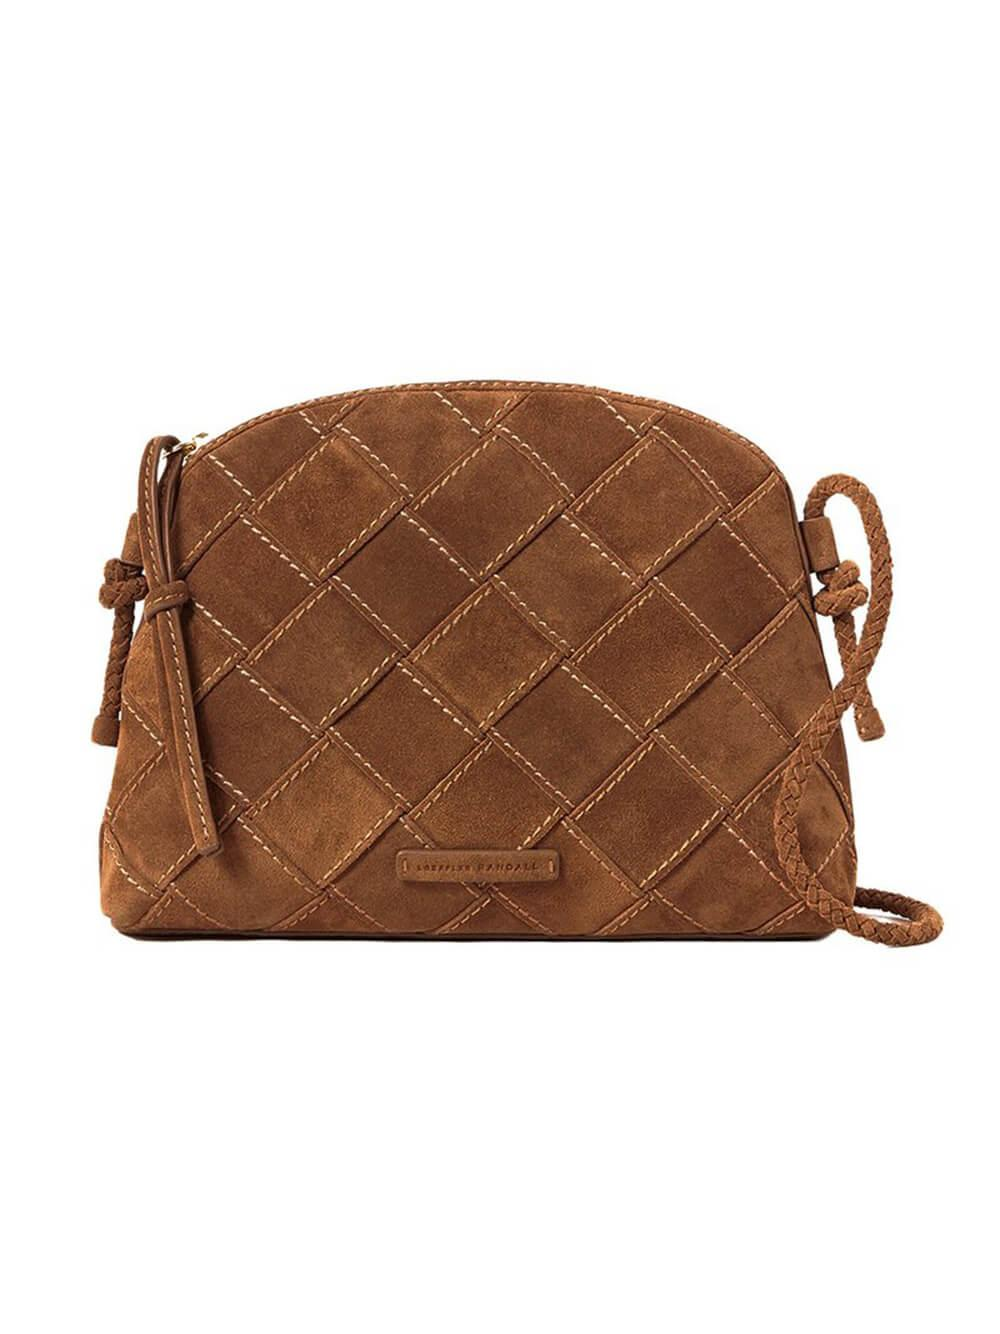 Mallory Suede Woven Crossbody Item # MALLORY-SPLS